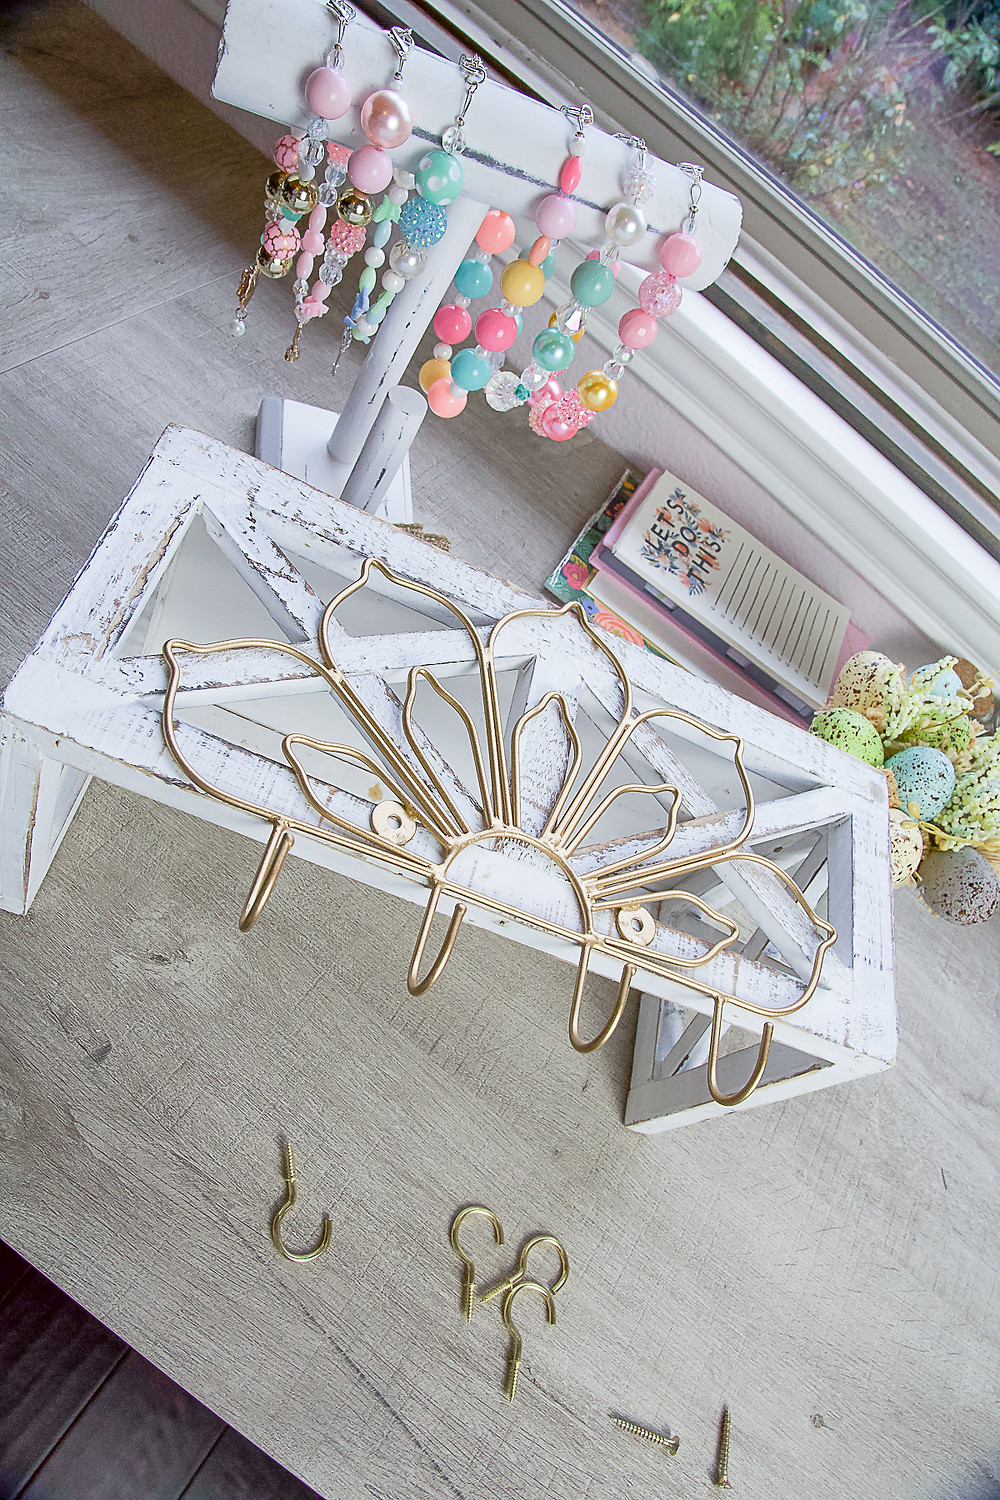 Materials Required for DIY Jewelry Holder